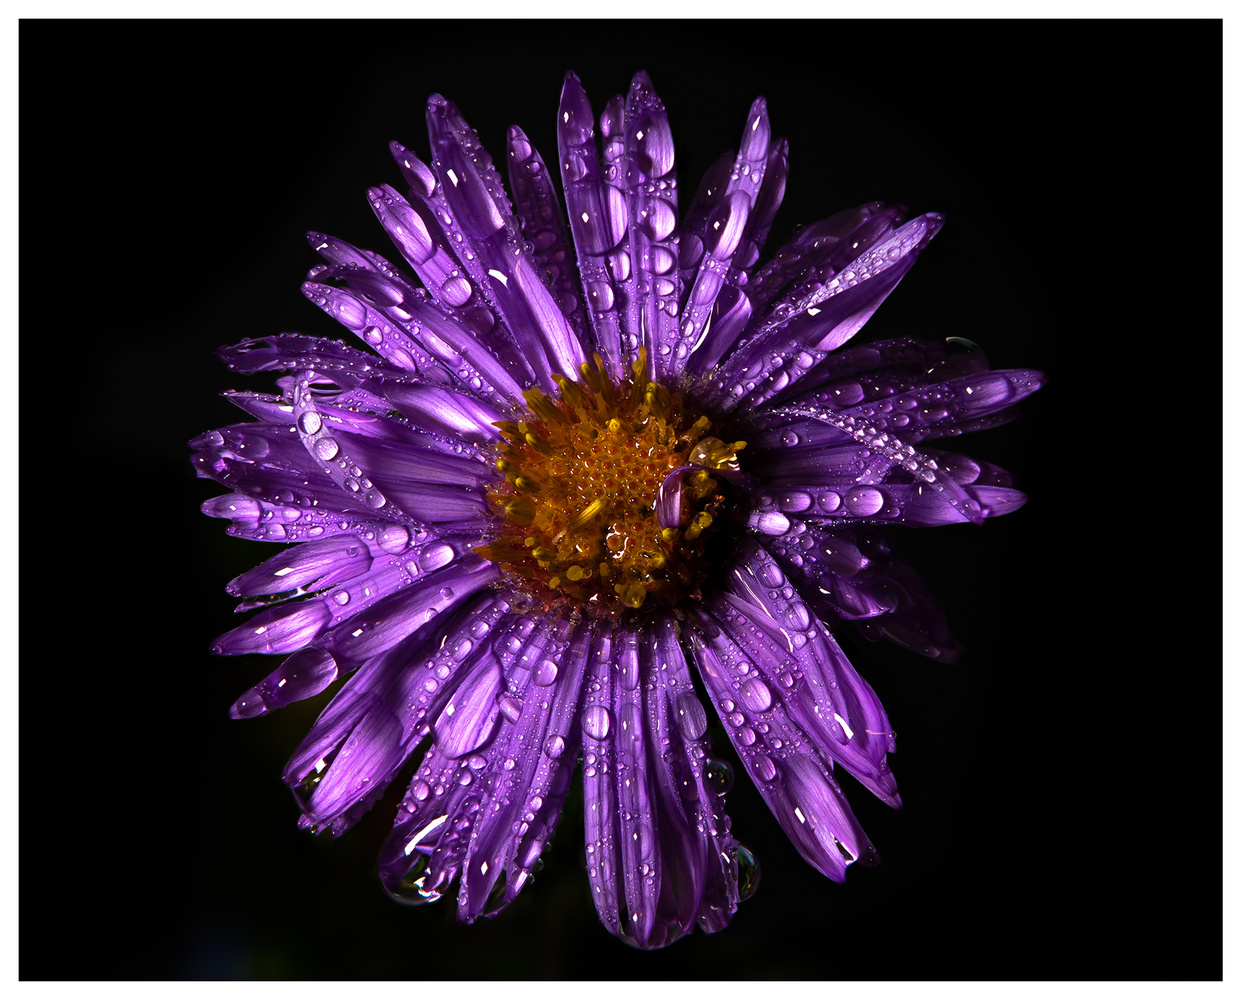 New England Aster 2 by Danial McCoy